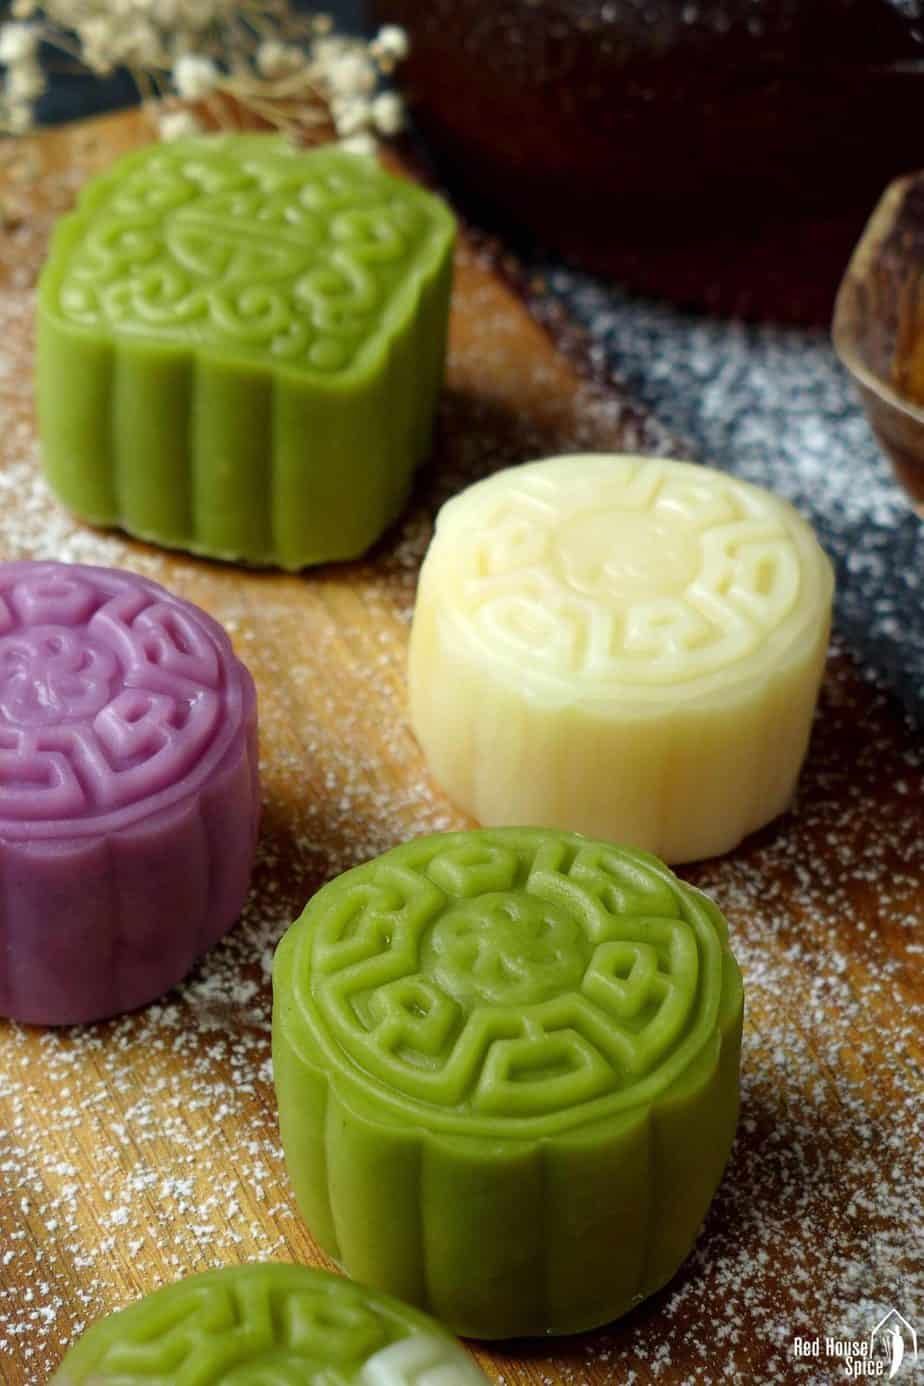 Snow skin mooncakes make in white, green and purple colour